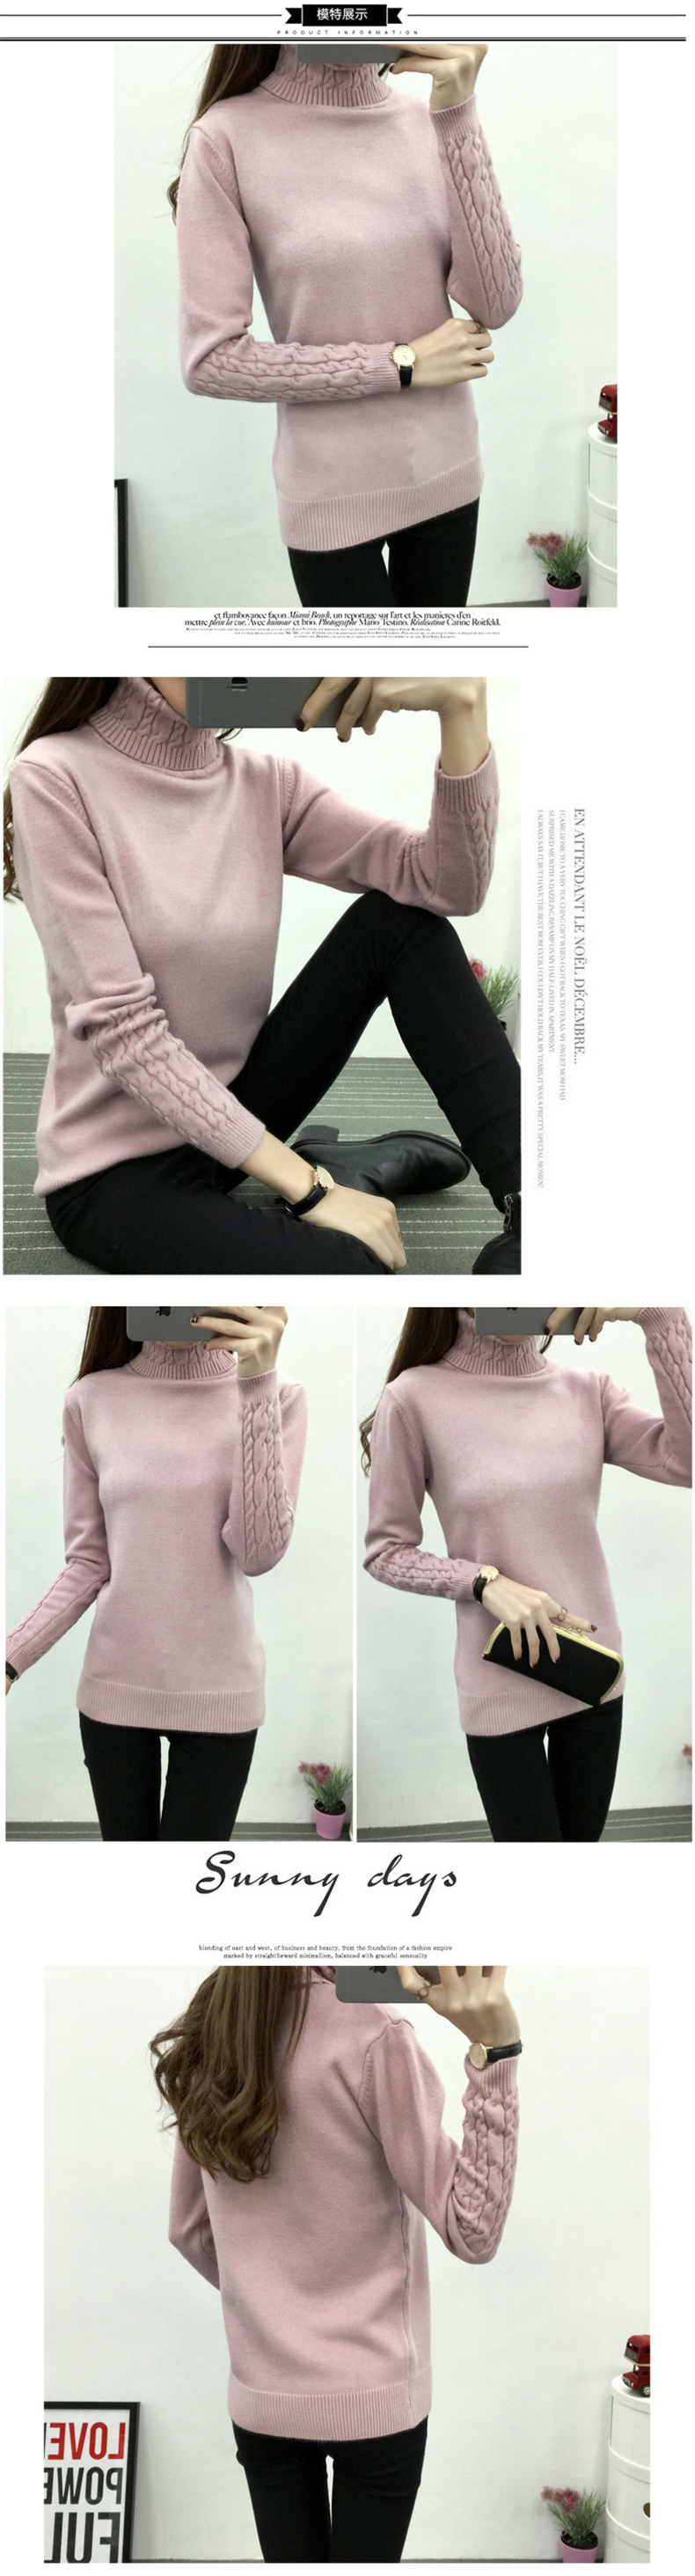 Thicken Warm Knitting Sweaters And Pullovers For Women 17 Winter Casual Elastic Turtleneck Knitwear Female Jumper Tricot Tops 4